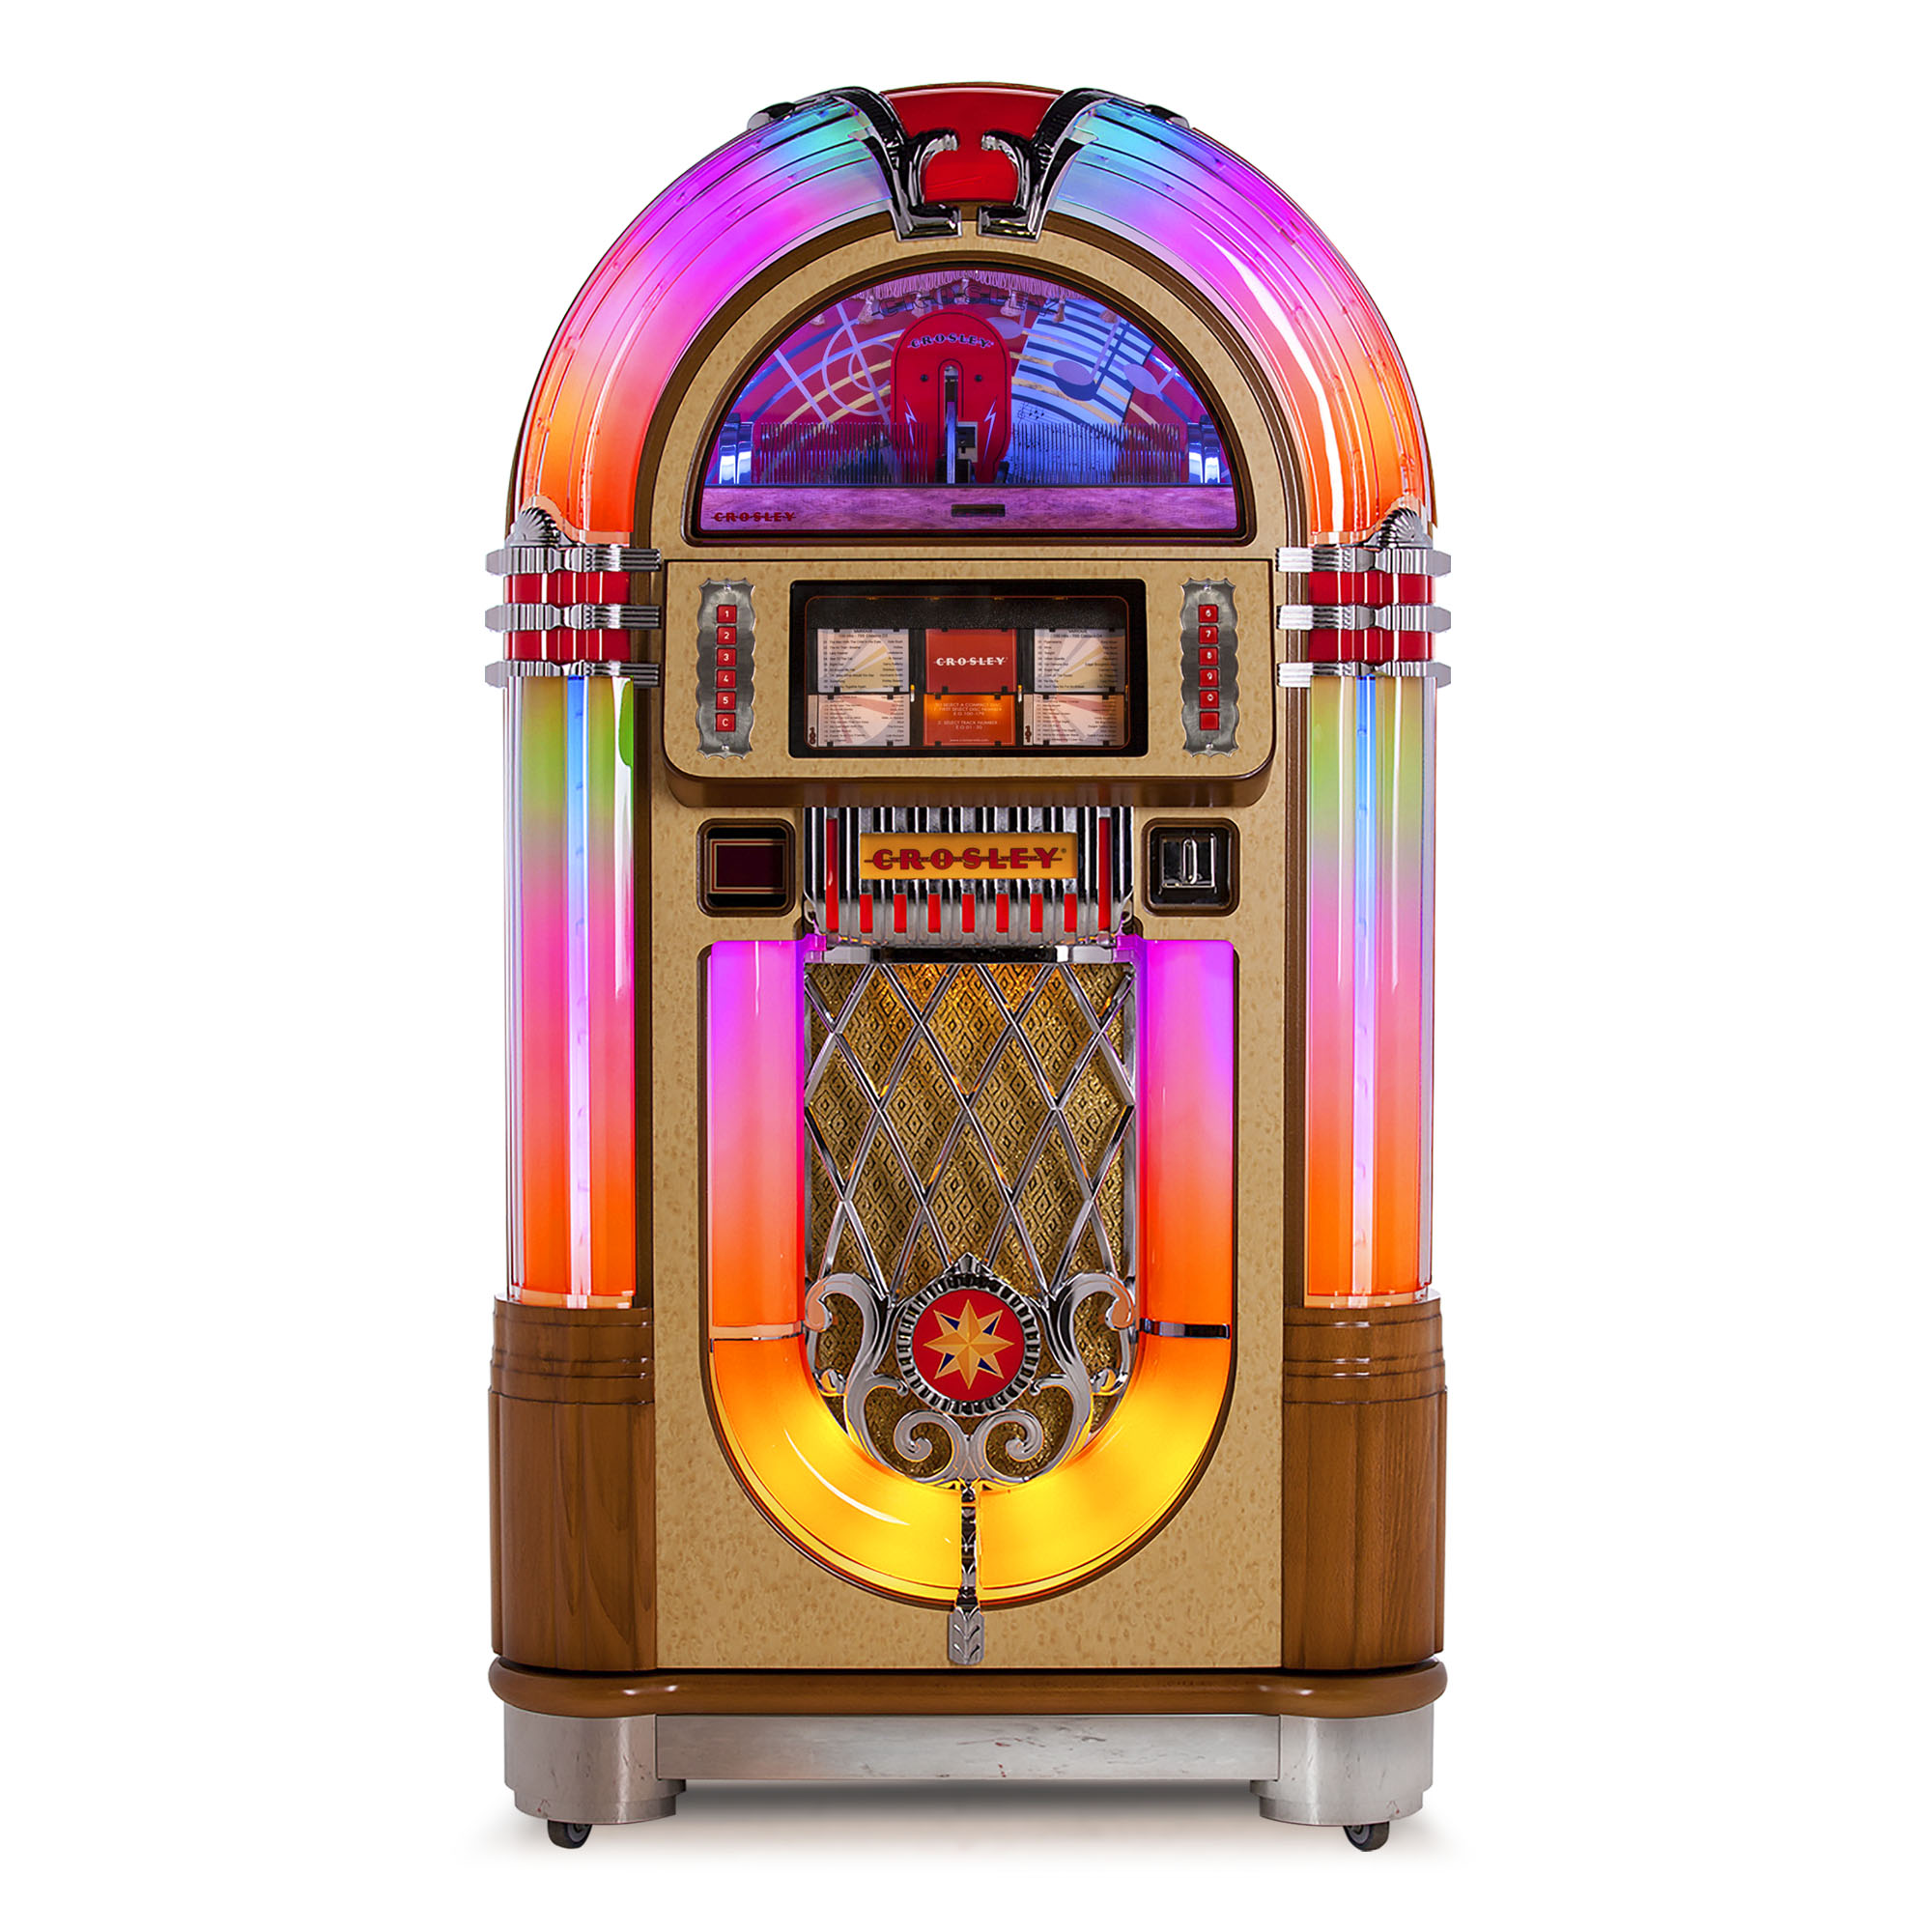 crosley slim line 50 39 s retro 80 cd bluetooth 240 watt jukebox for 2015 for sale online ebay. Black Bedroom Furniture Sets. Home Design Ideas